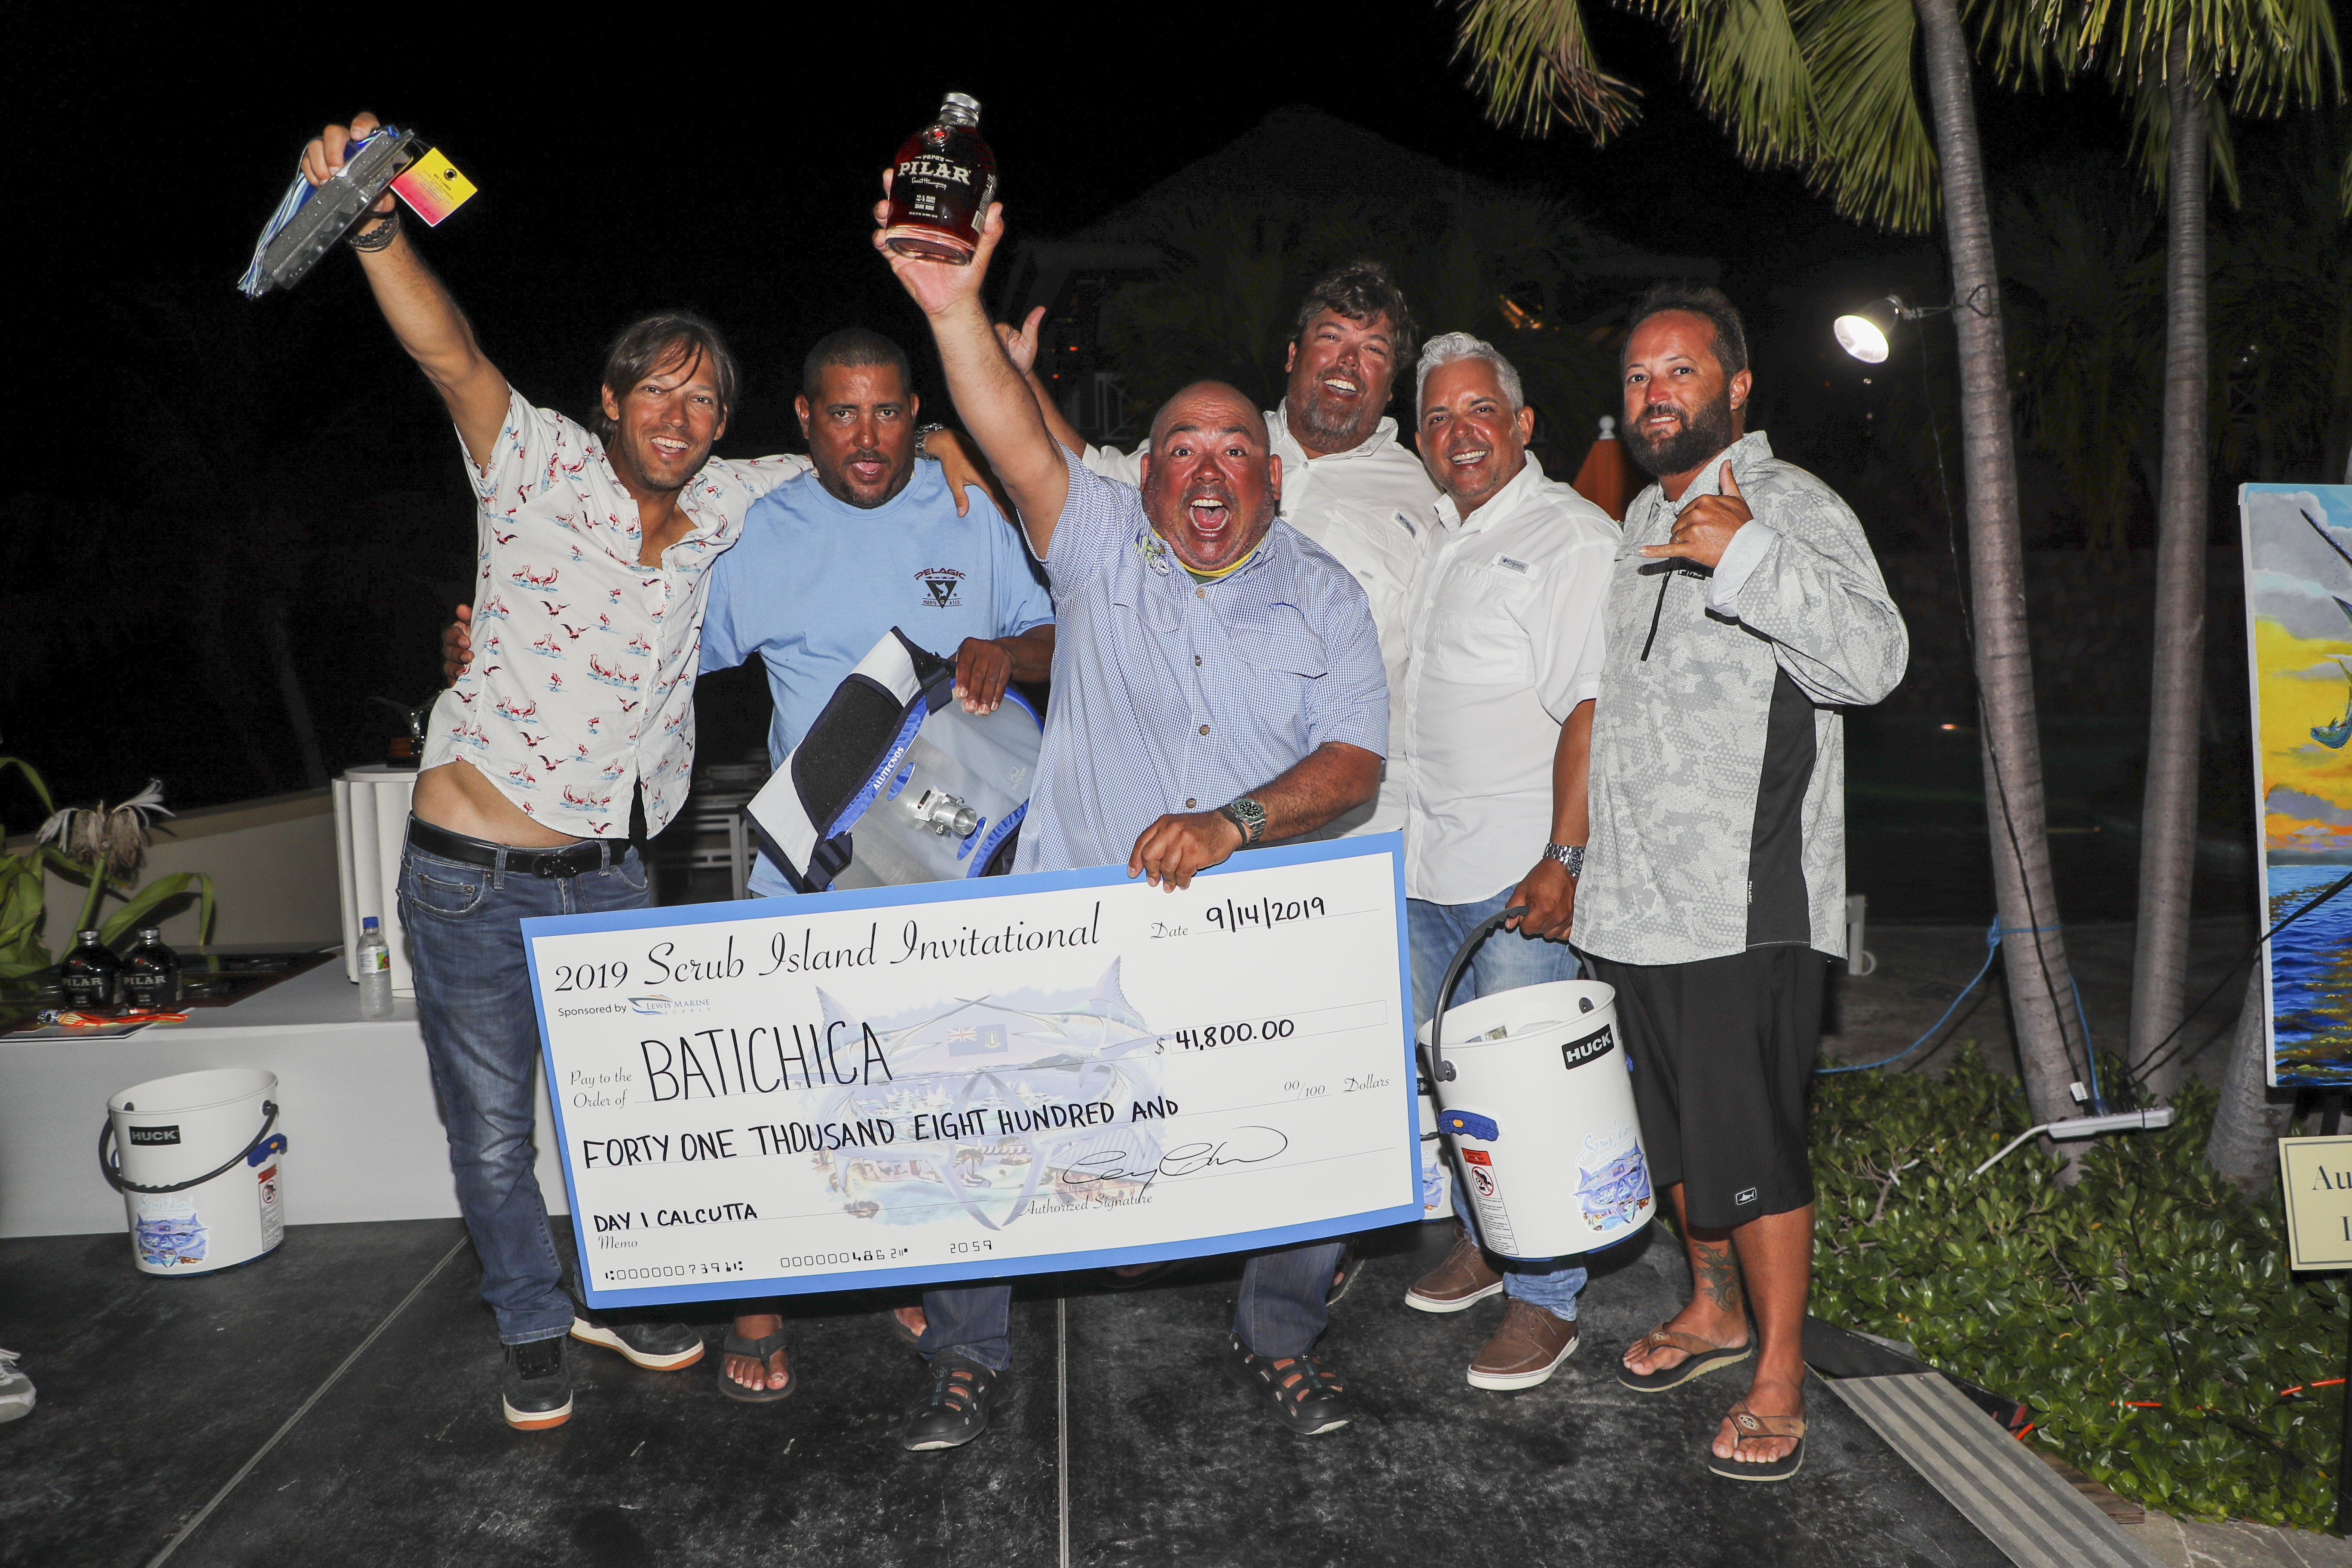 Batichica is a sportfishing team from Puerto Rico